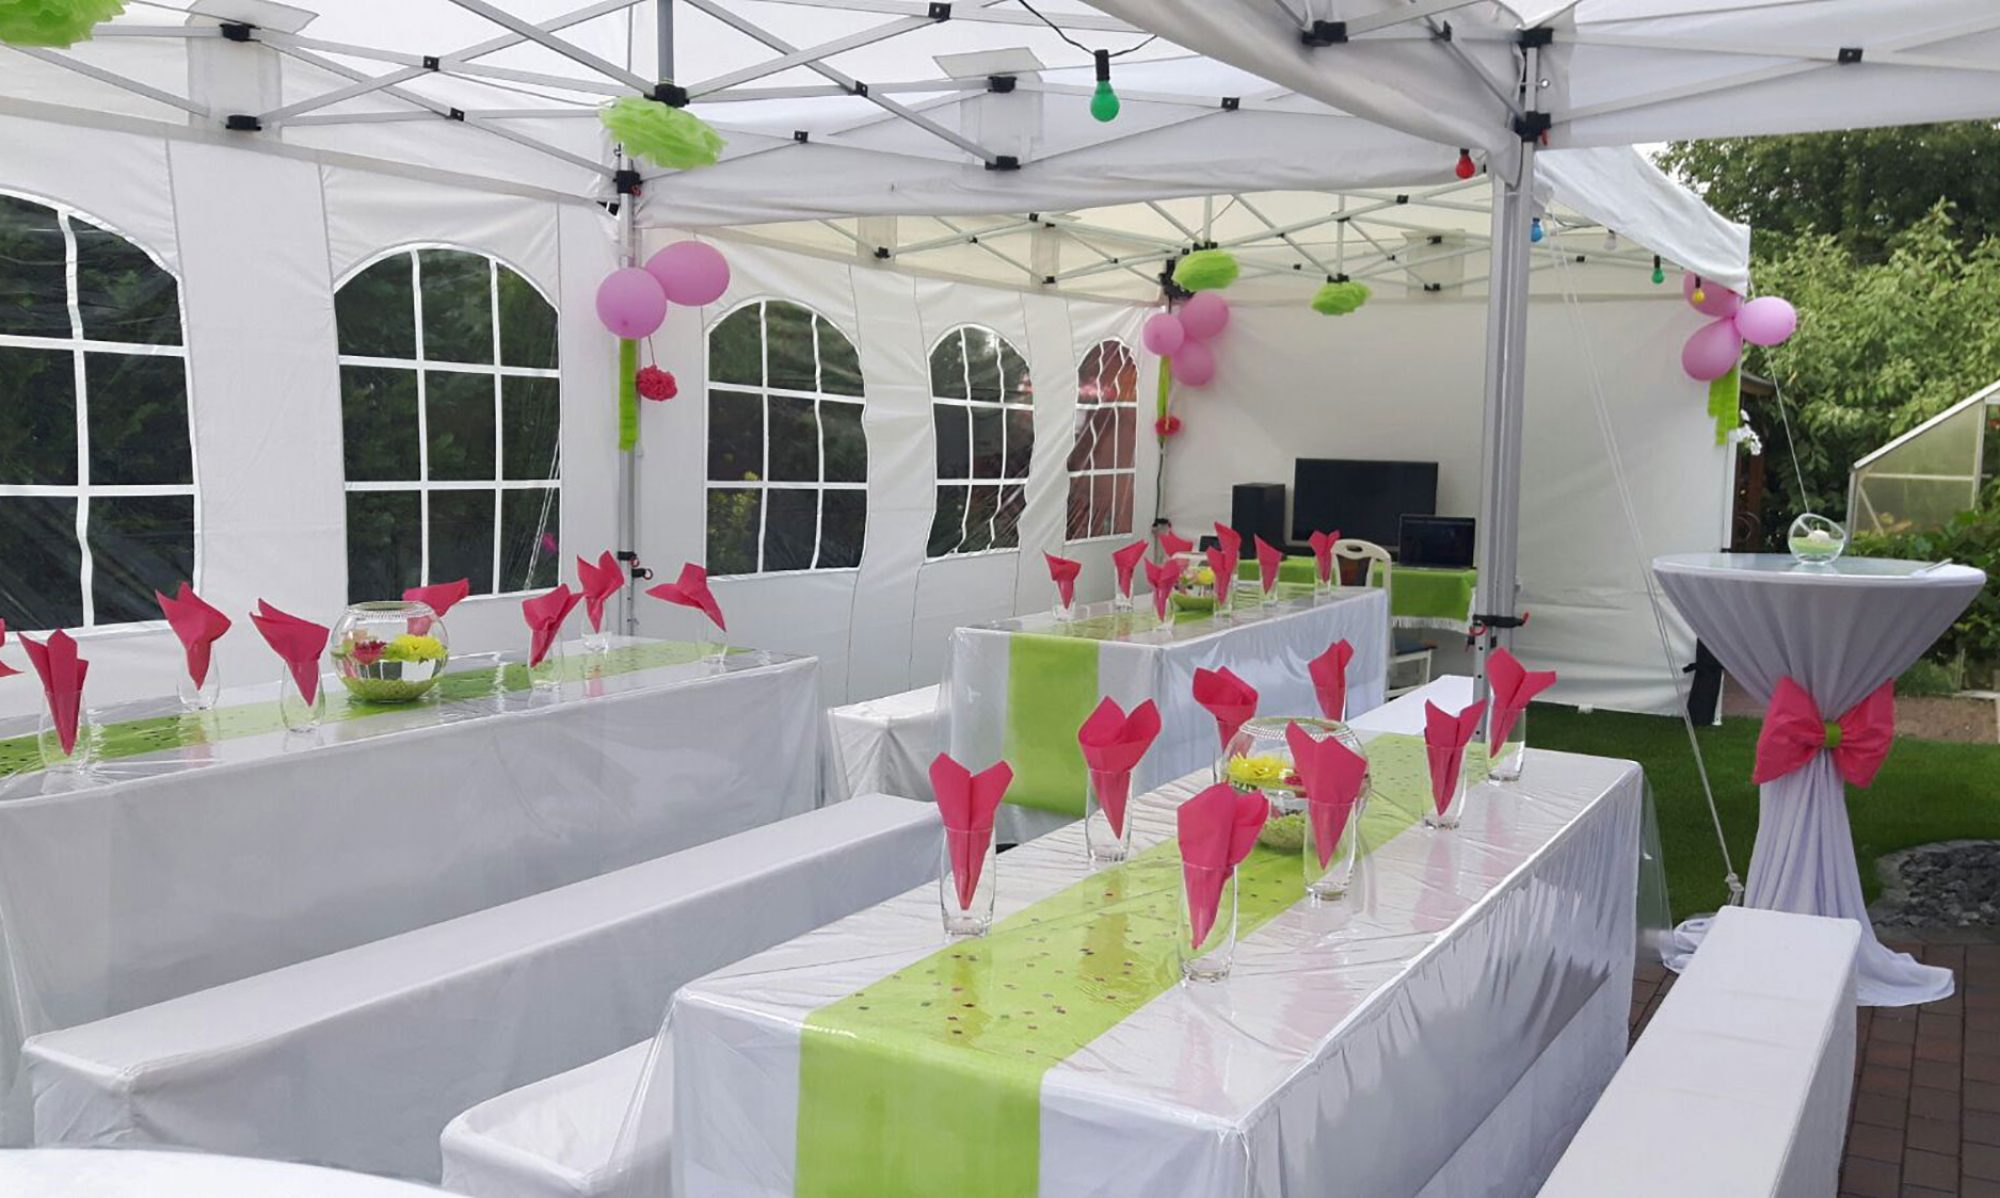 Party-Miet-Service Weimer